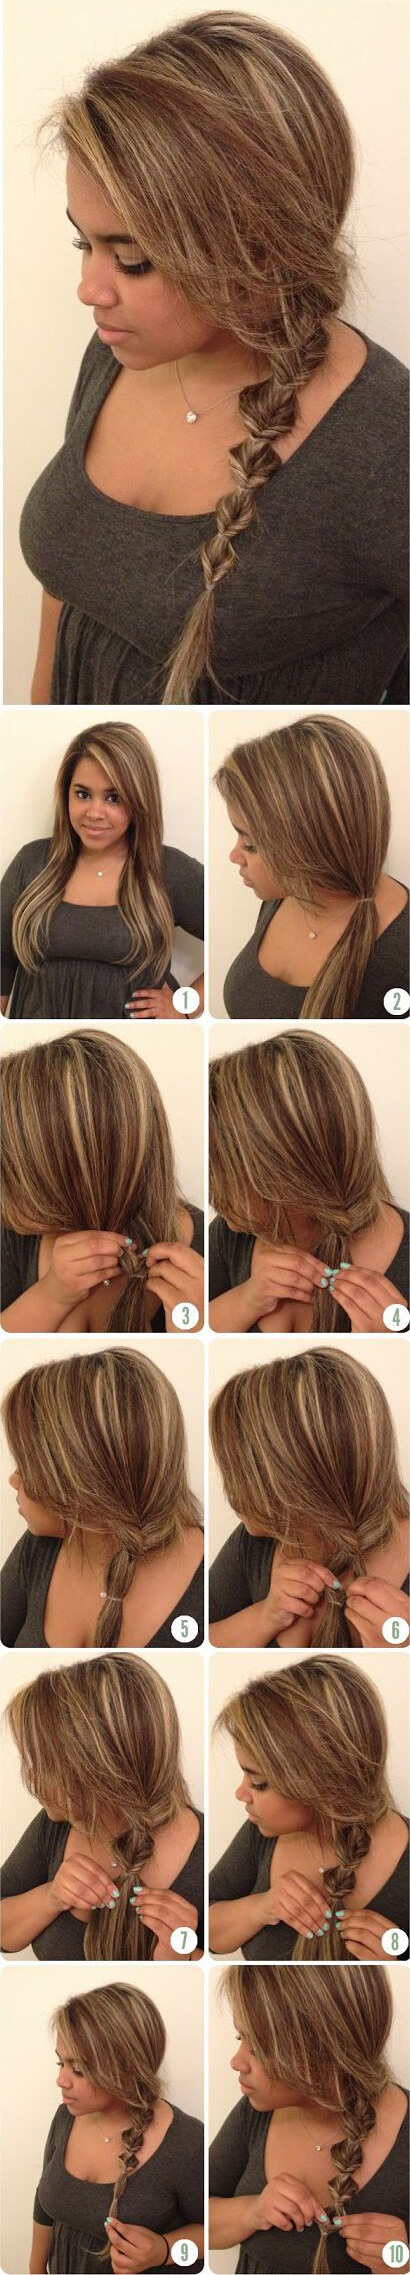 easy step-by-step sectioned braid